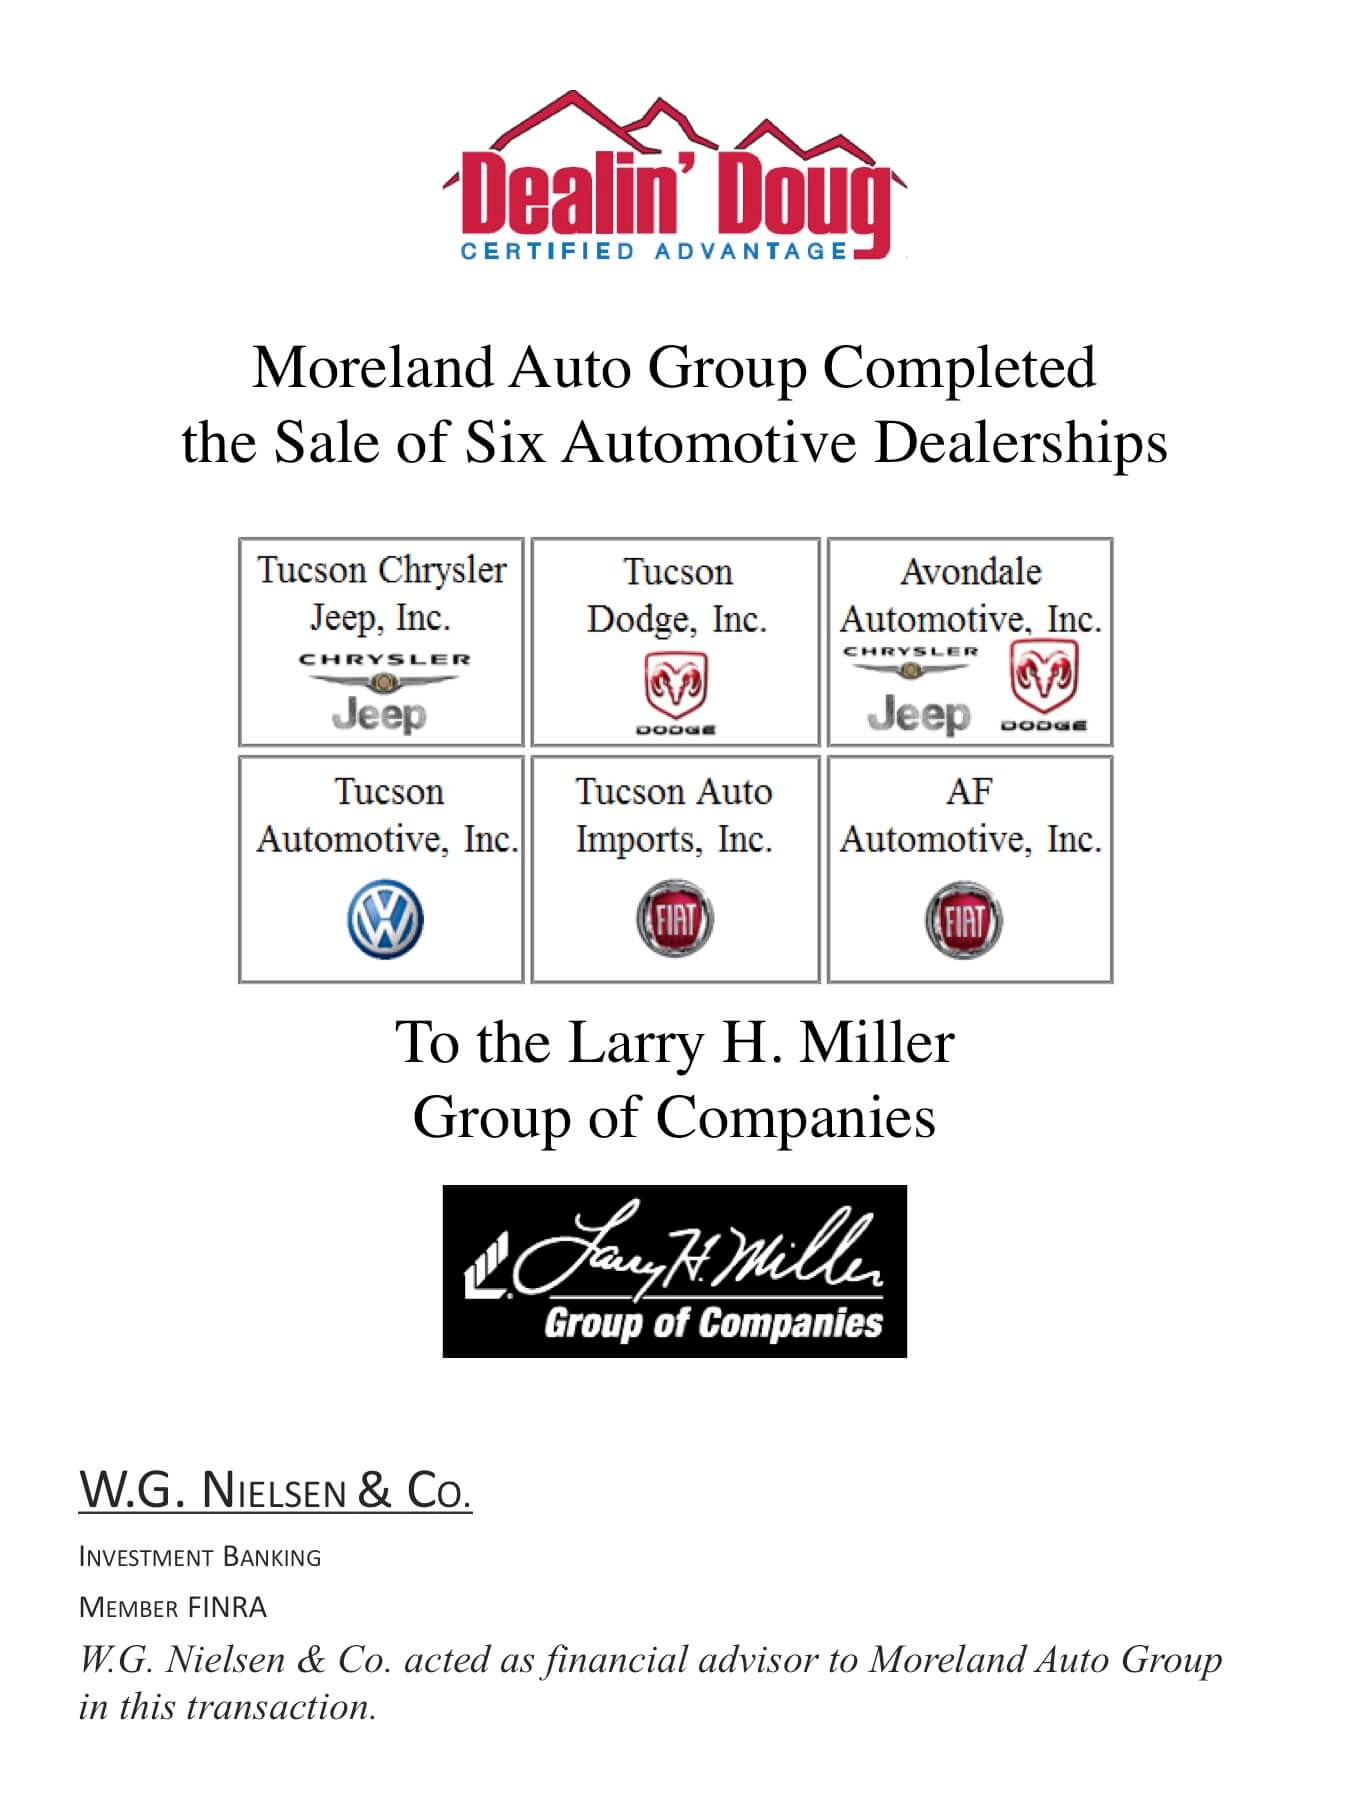 moreland auto group investment banking transaction